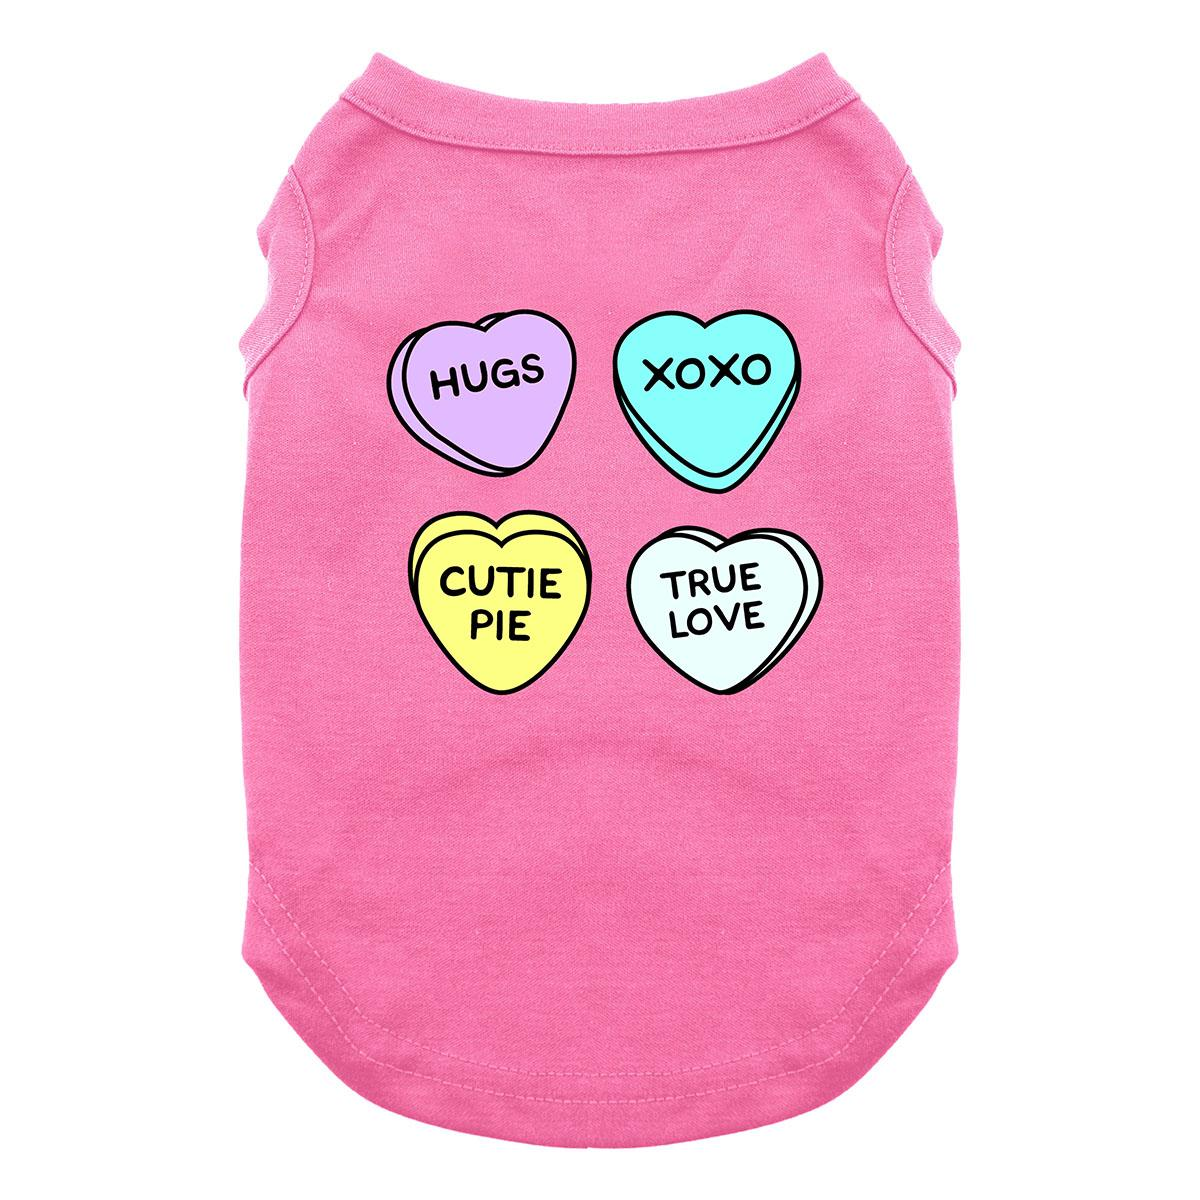 Conversation Hearts Valentine Dog Shirt - Bright Pink